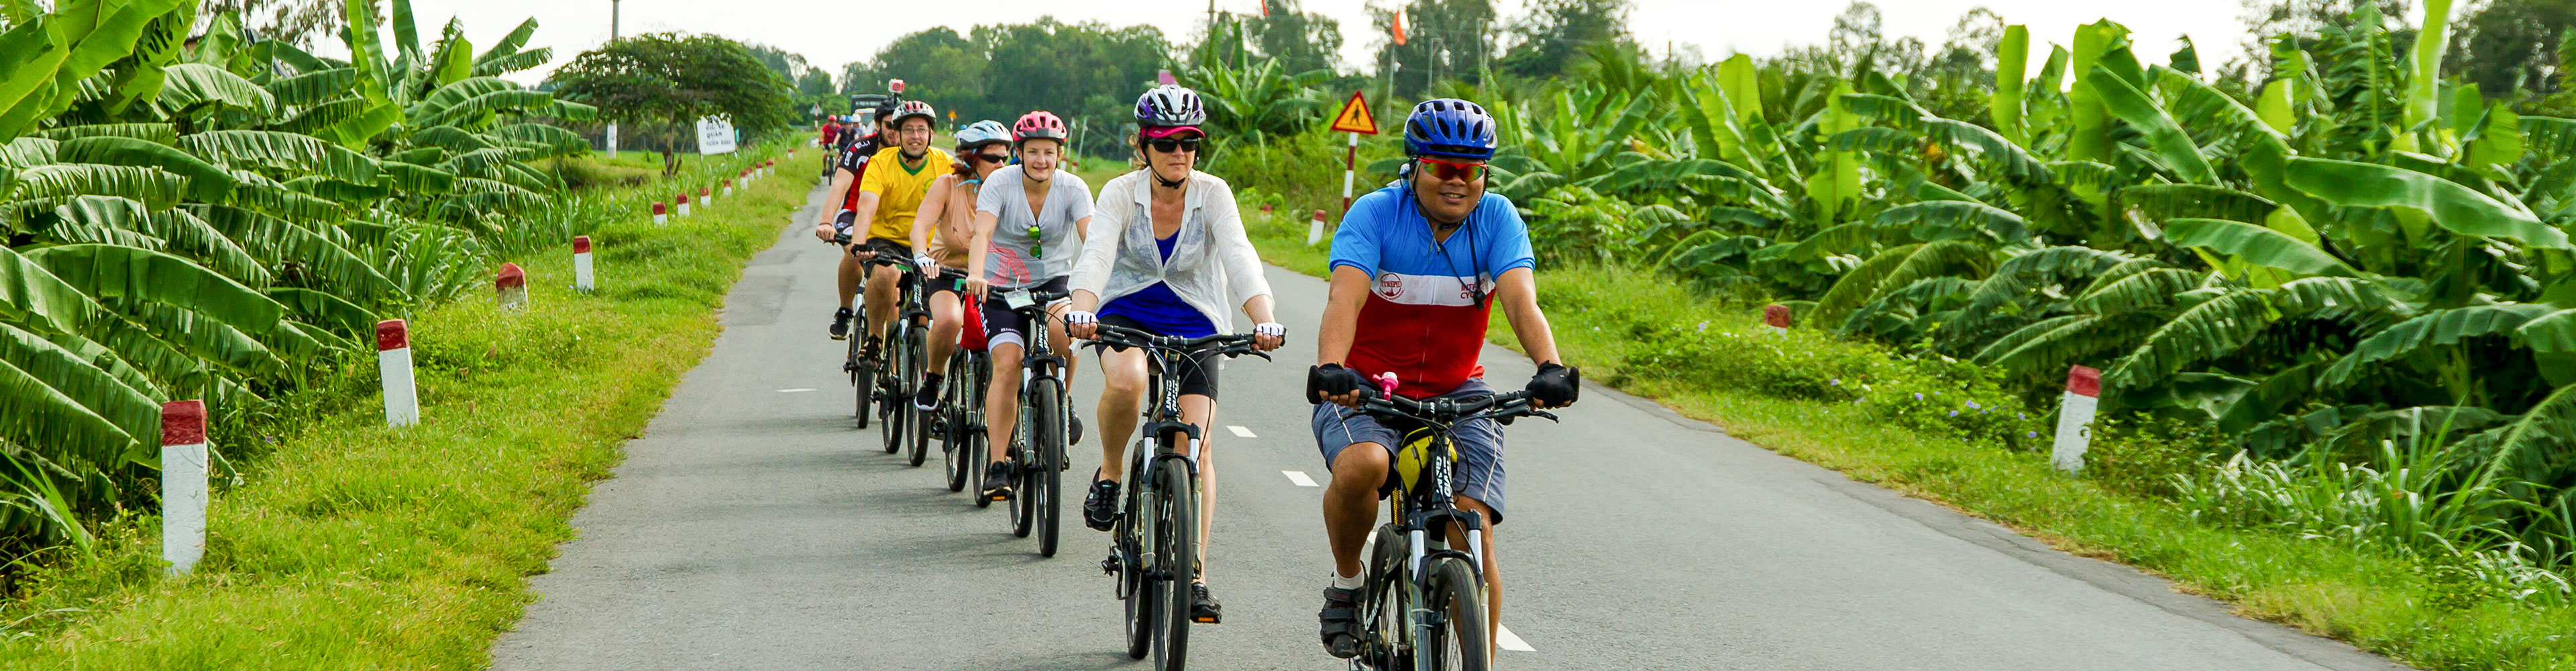 Cycle South East Asia